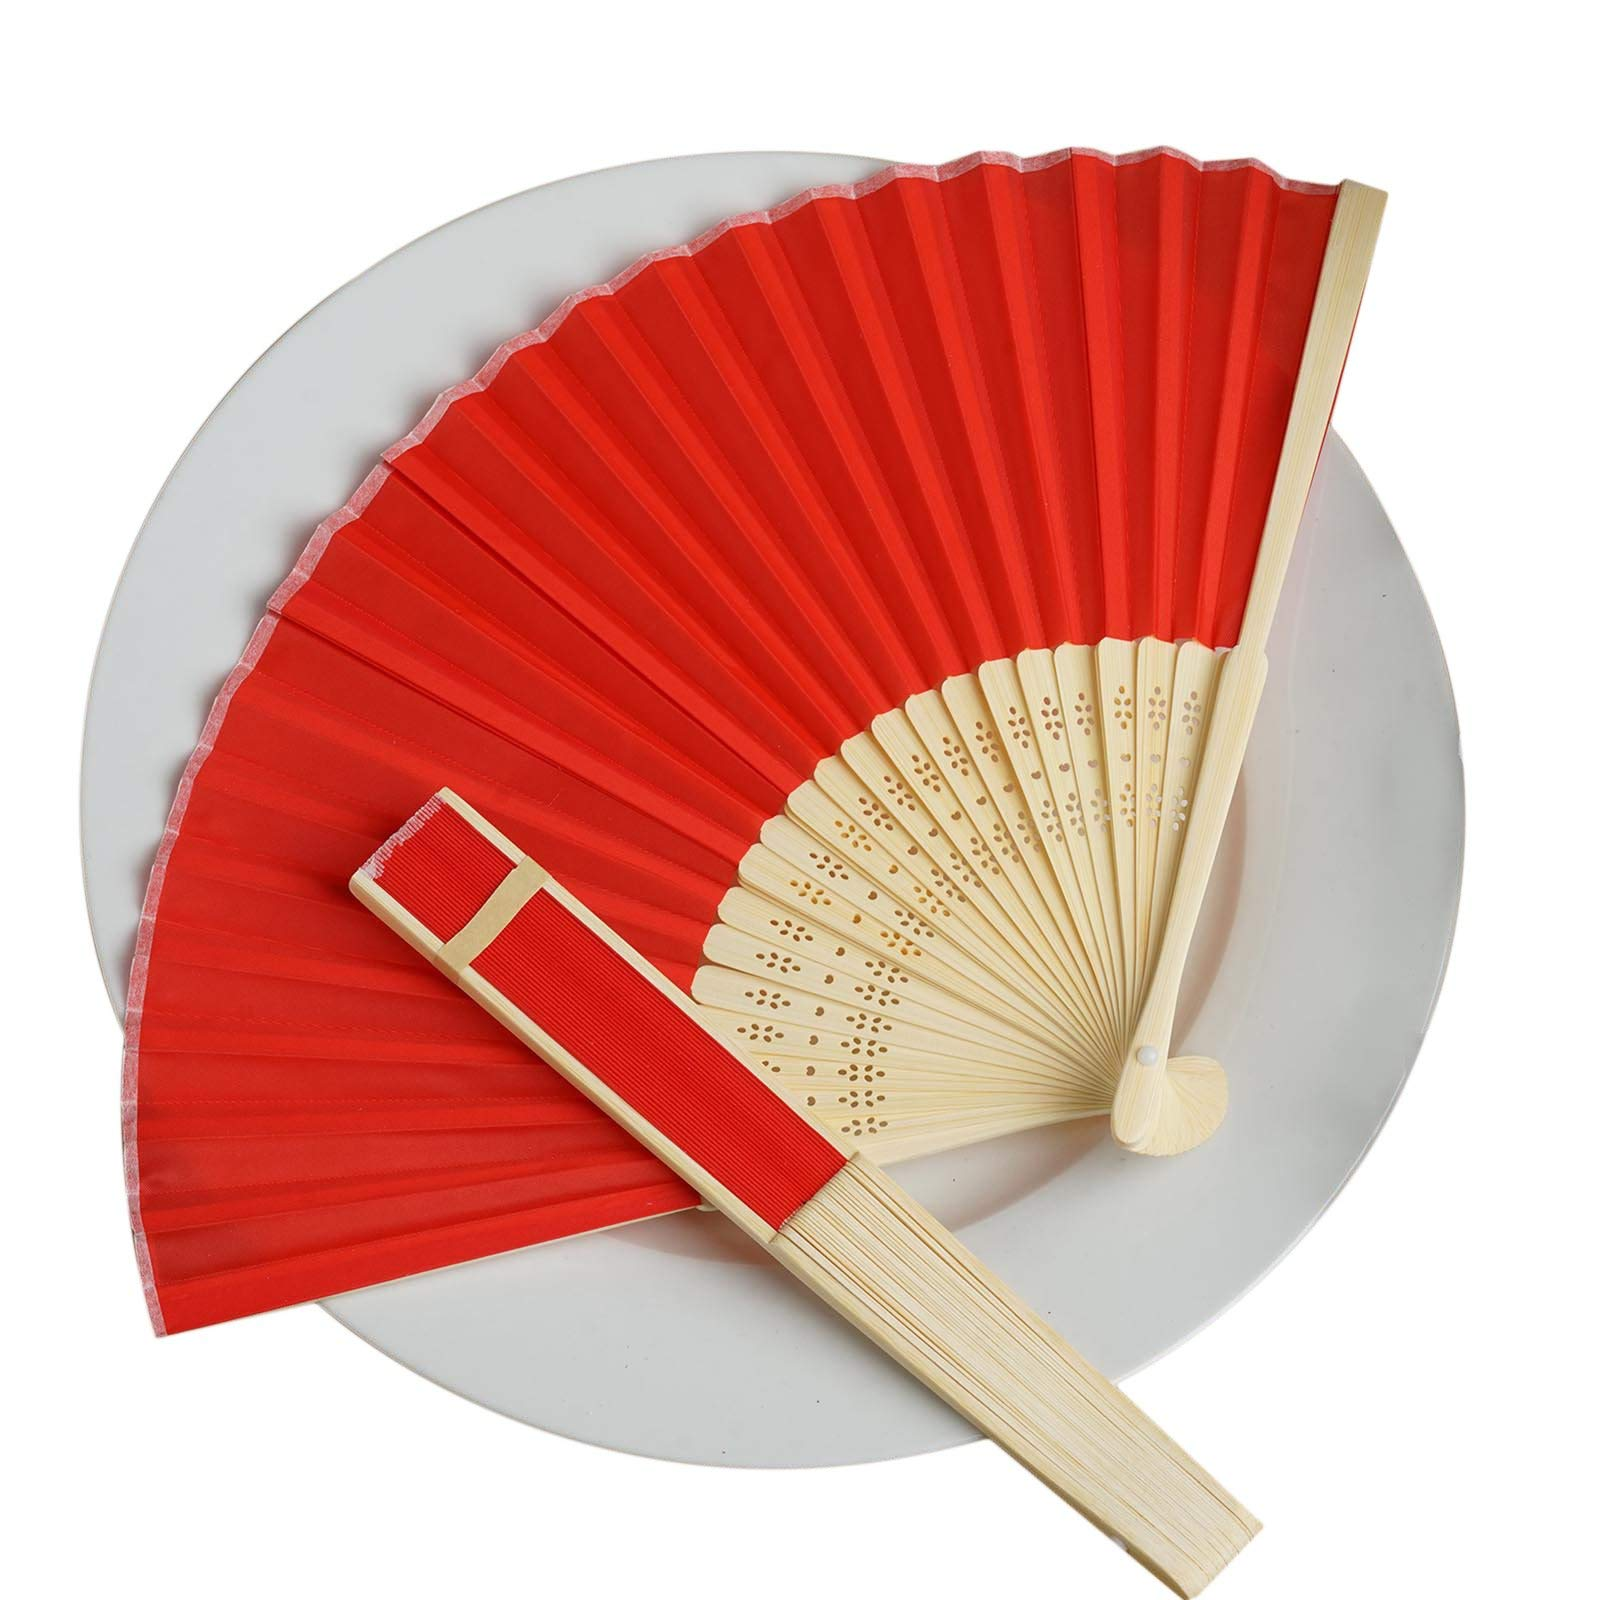 Efavormart Lot of 50 Wholesale Silk Folding Birthday Banquet Event Wedding Party Favor Fans - Lot of 50| Color| Red by Efavormart.com